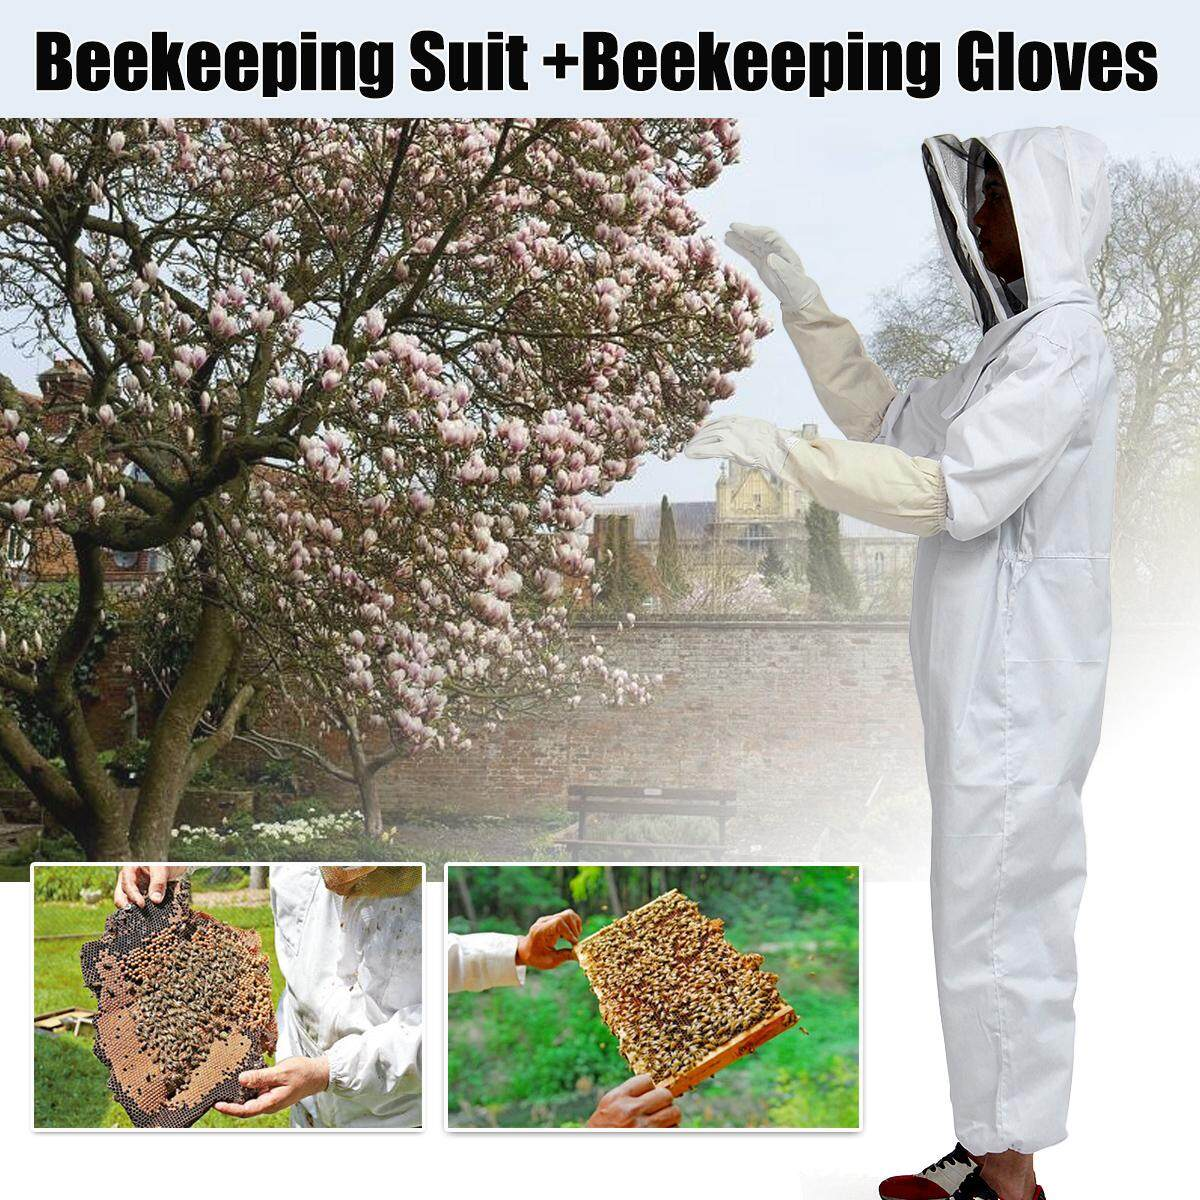 Full Body Beekeeping Bee Suit Heavy Duty with Leather Ventilated Keeping Gloves